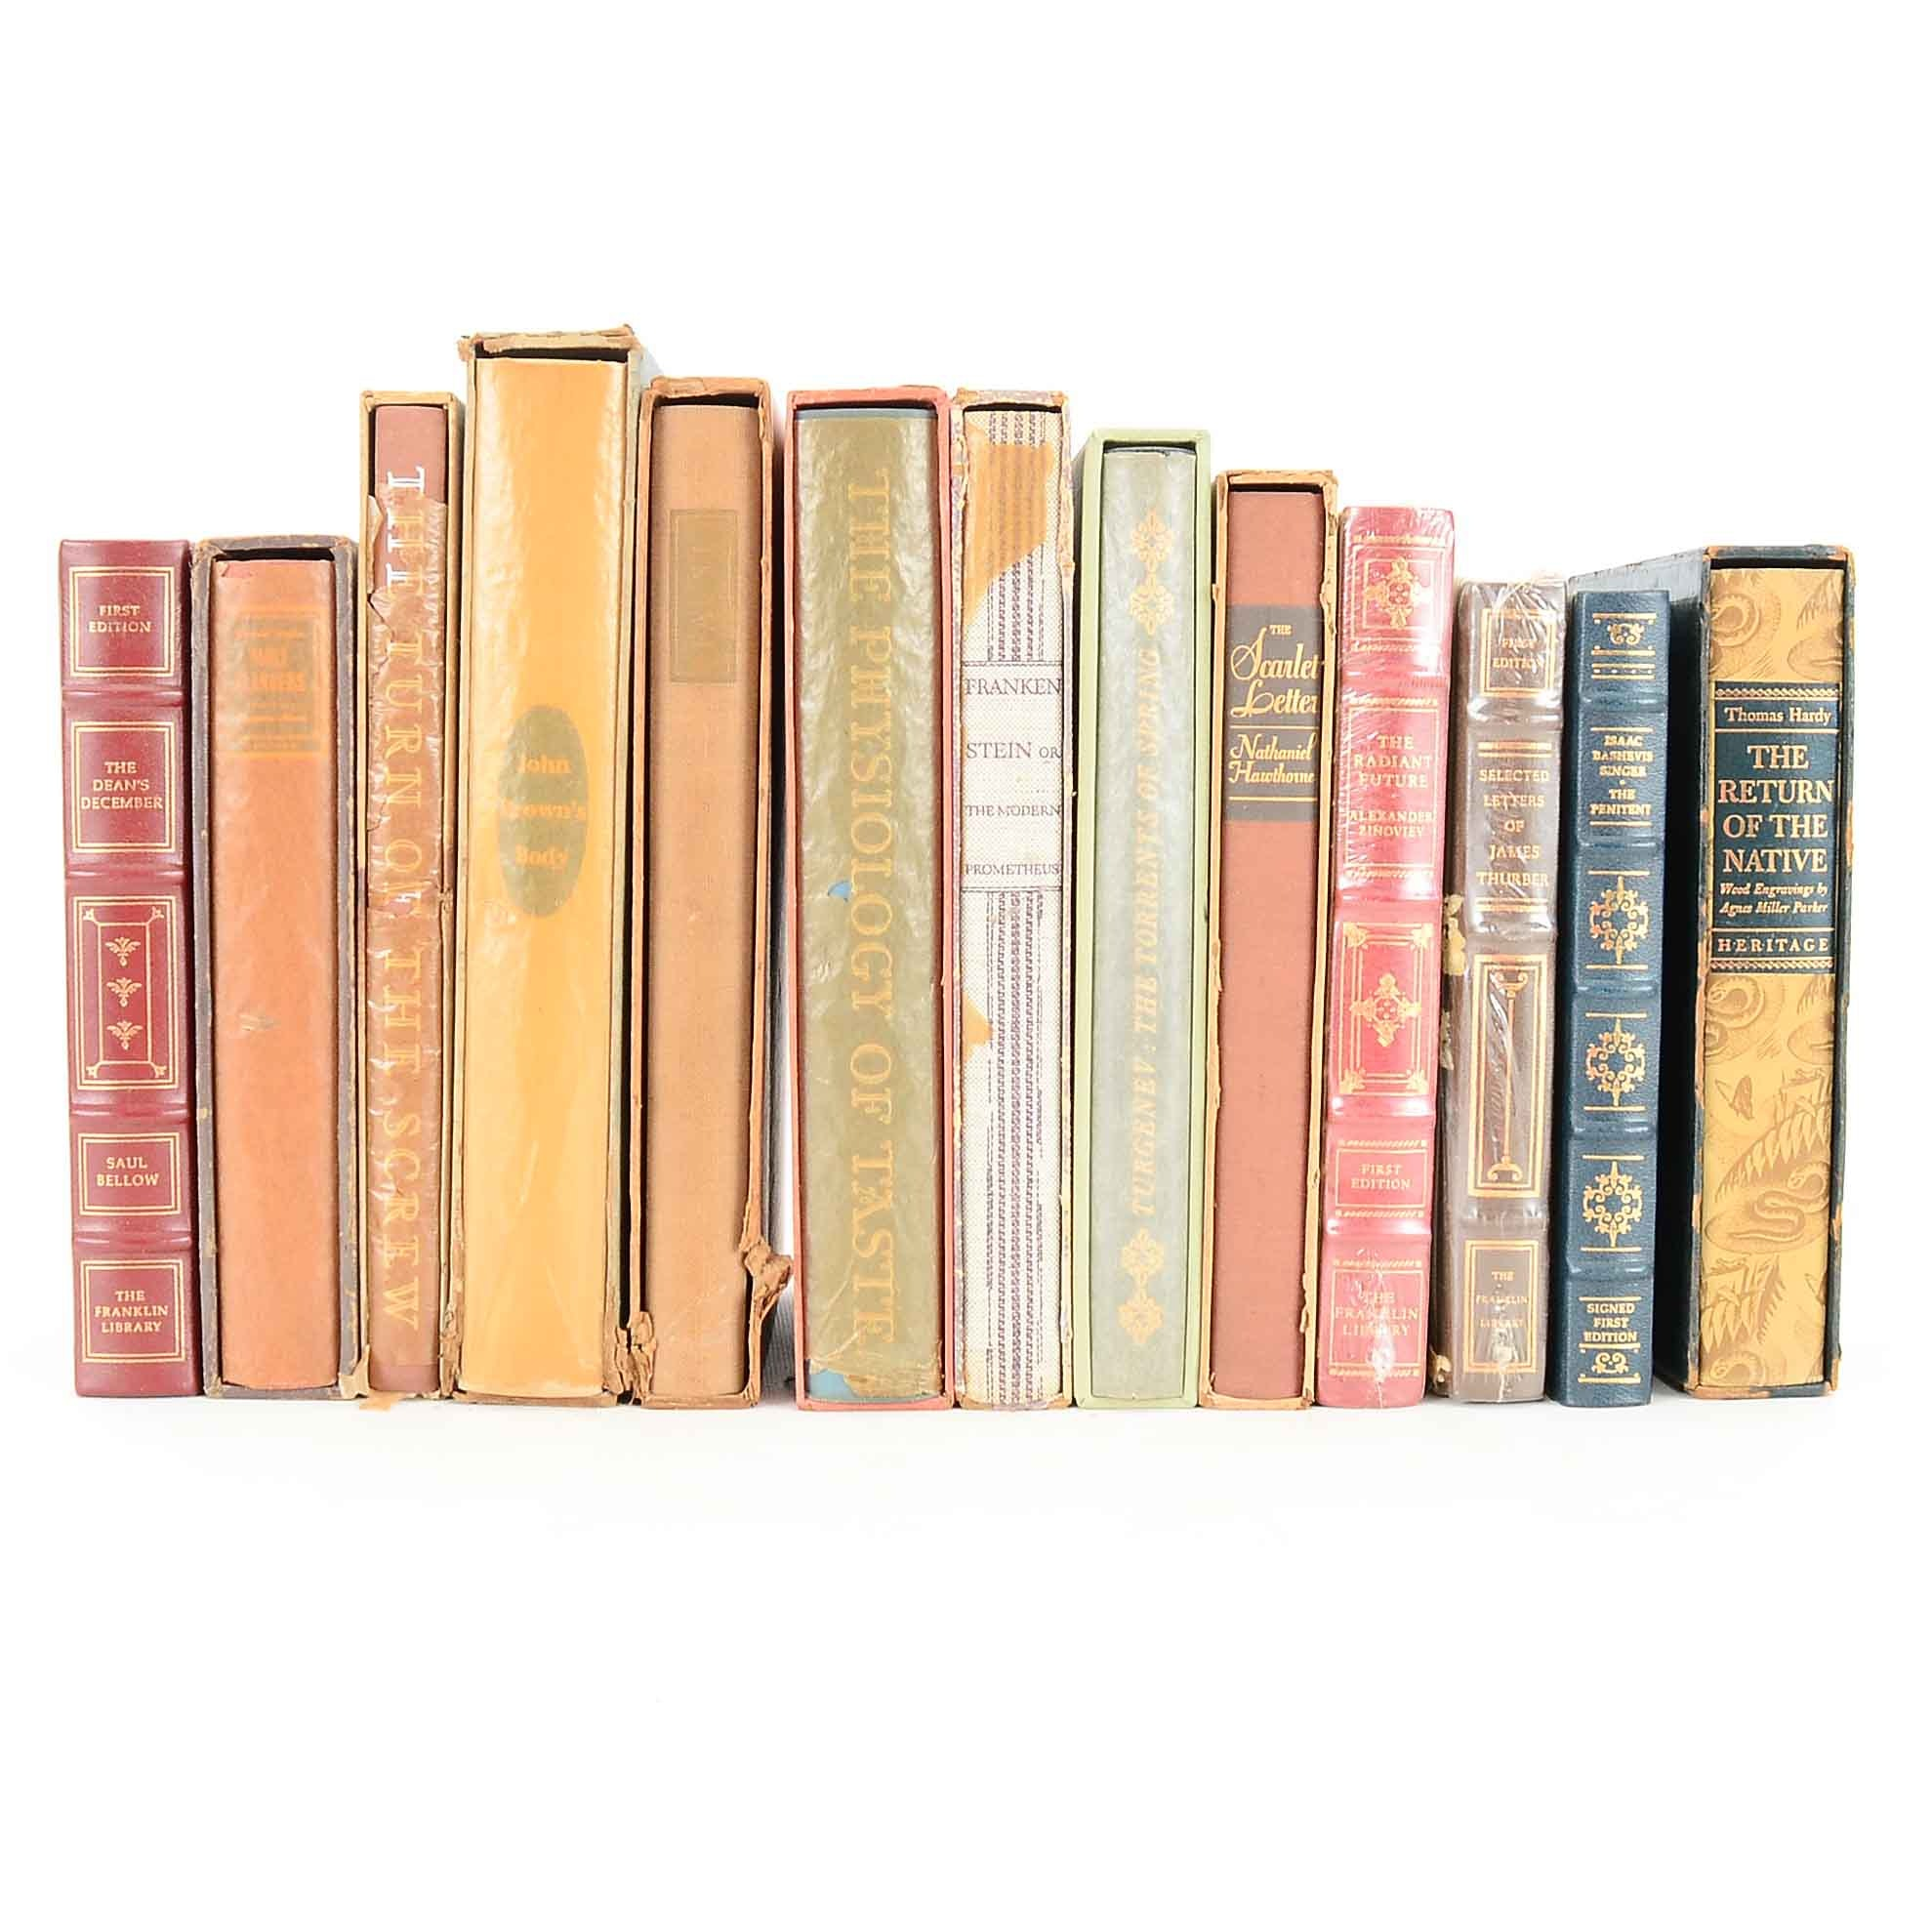 Group of Hardcover Books